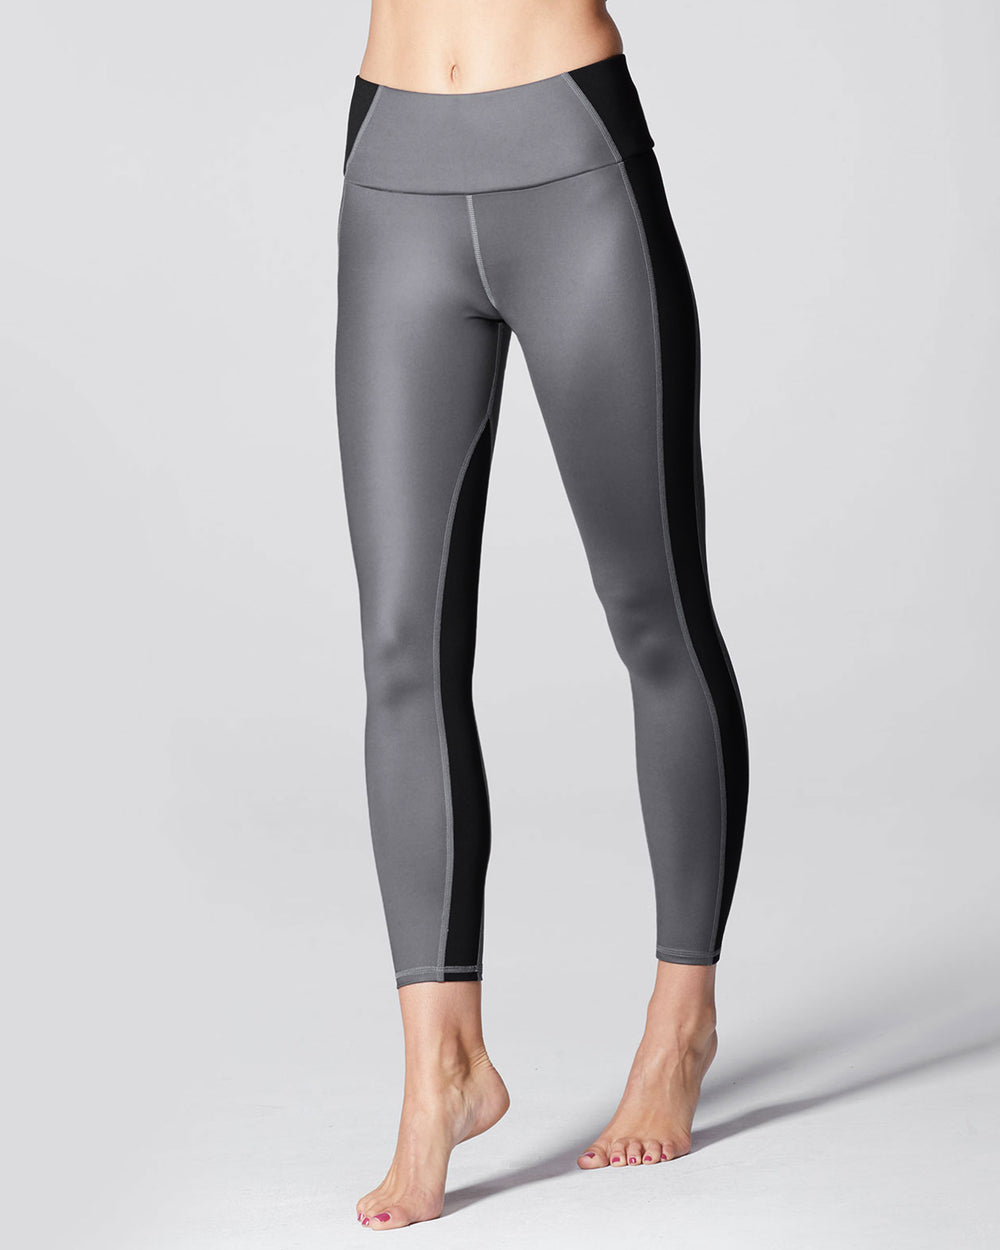 Vibe High Waisted Legging - Gunmetal